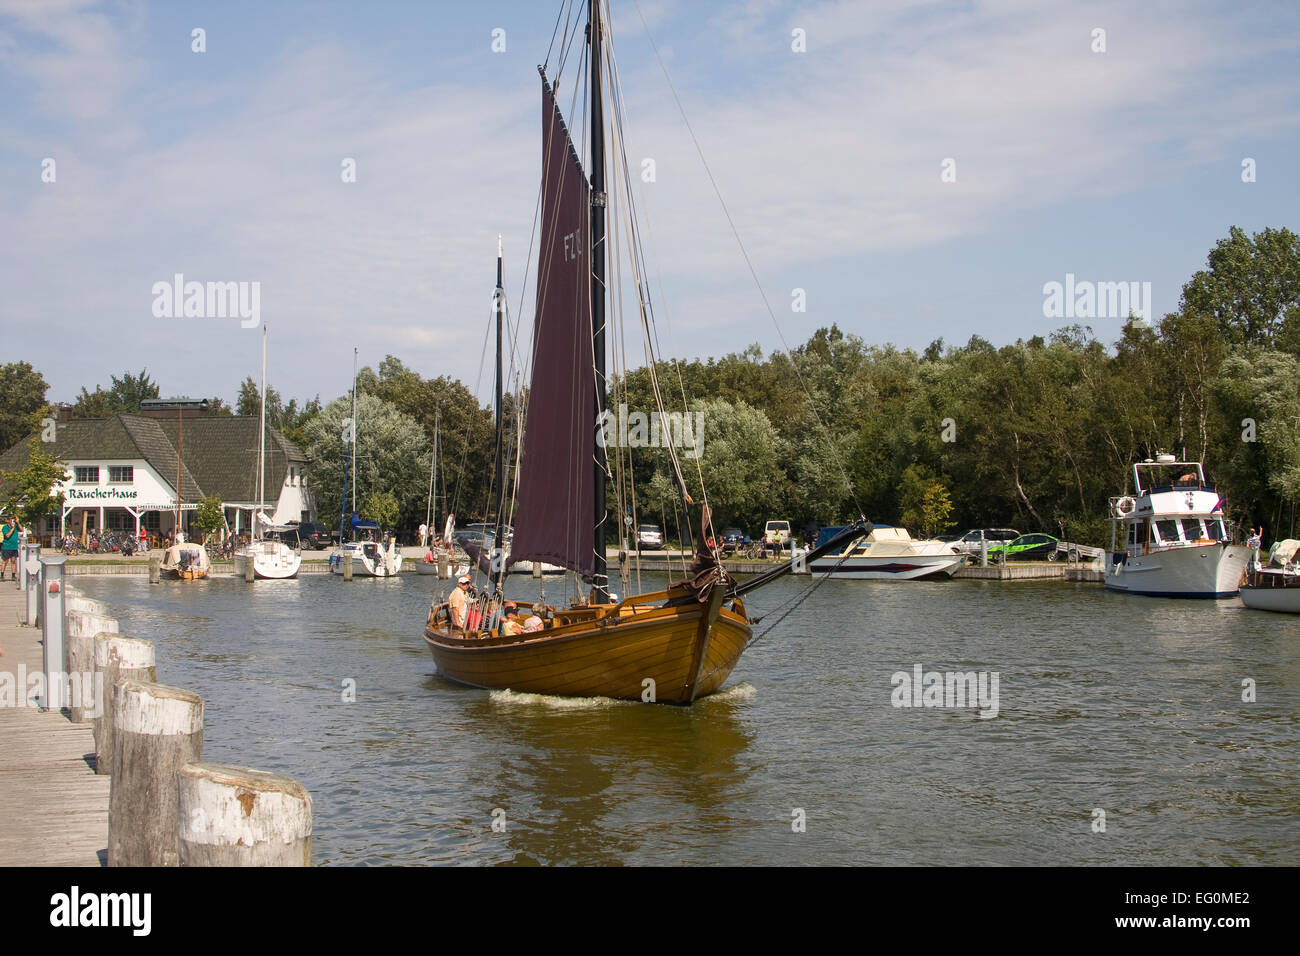 A traditional Zeesboat in the port of Althagen to Ahrenshoop on the Darß, Mecklenburg-Vorpommern - Stock Image